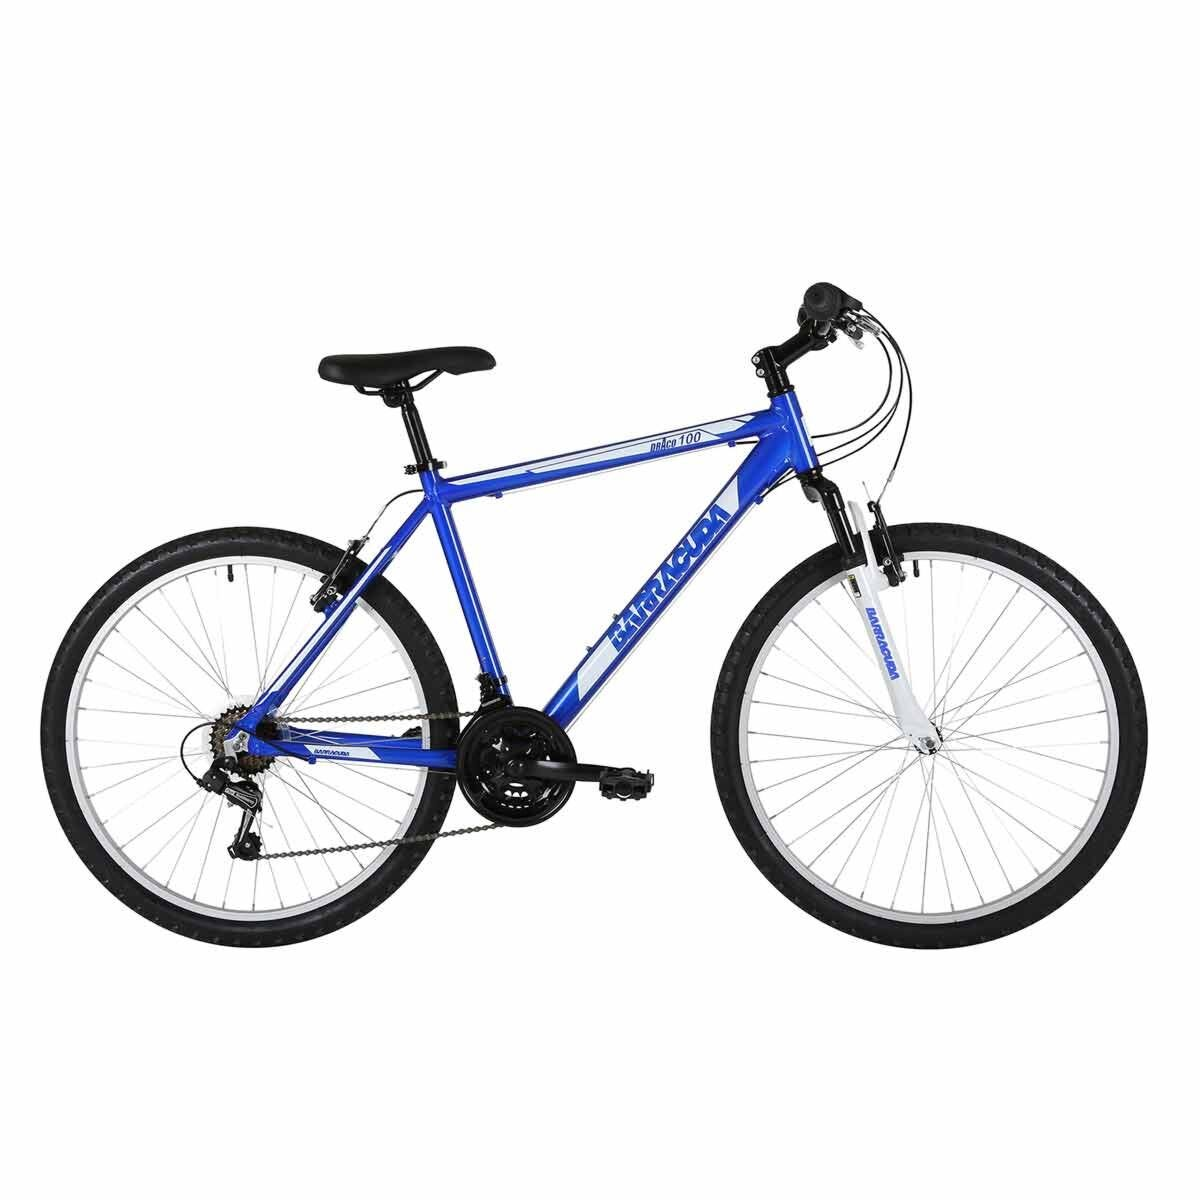 Barracuda Draco 100 Adult Mountain Bike 21 Inch Frame